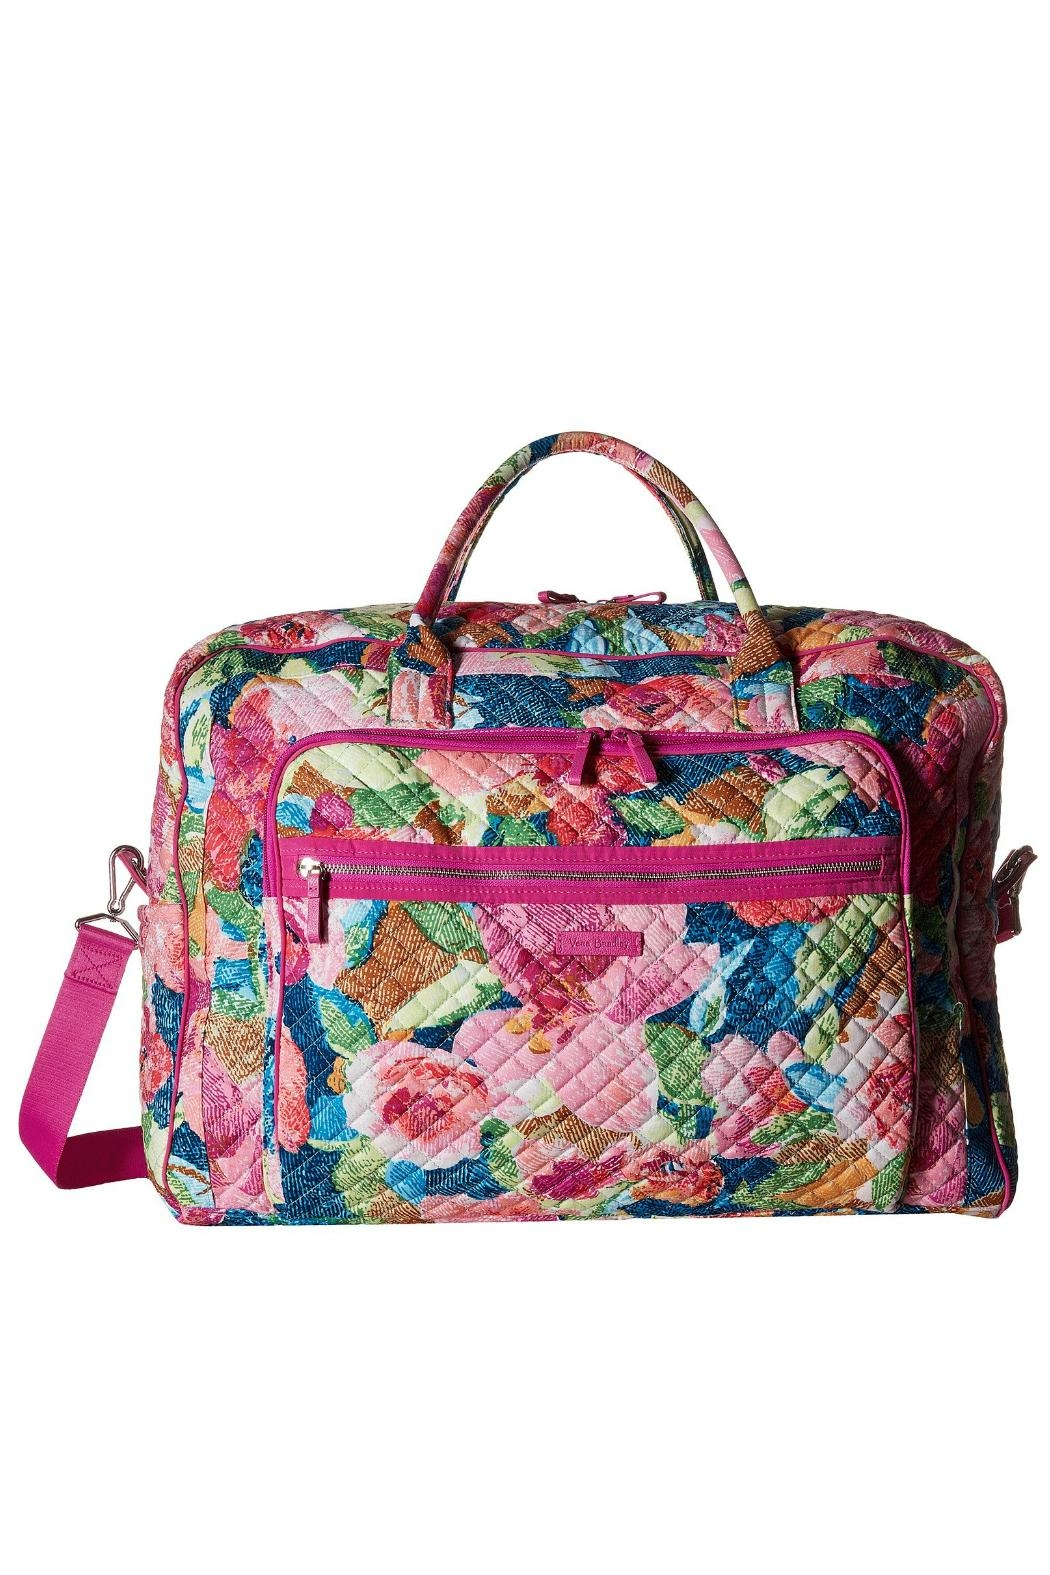 Vera Bradley Superbloom Iconic Weekender from Kentucky by Mimi s ... 6e888ac30a